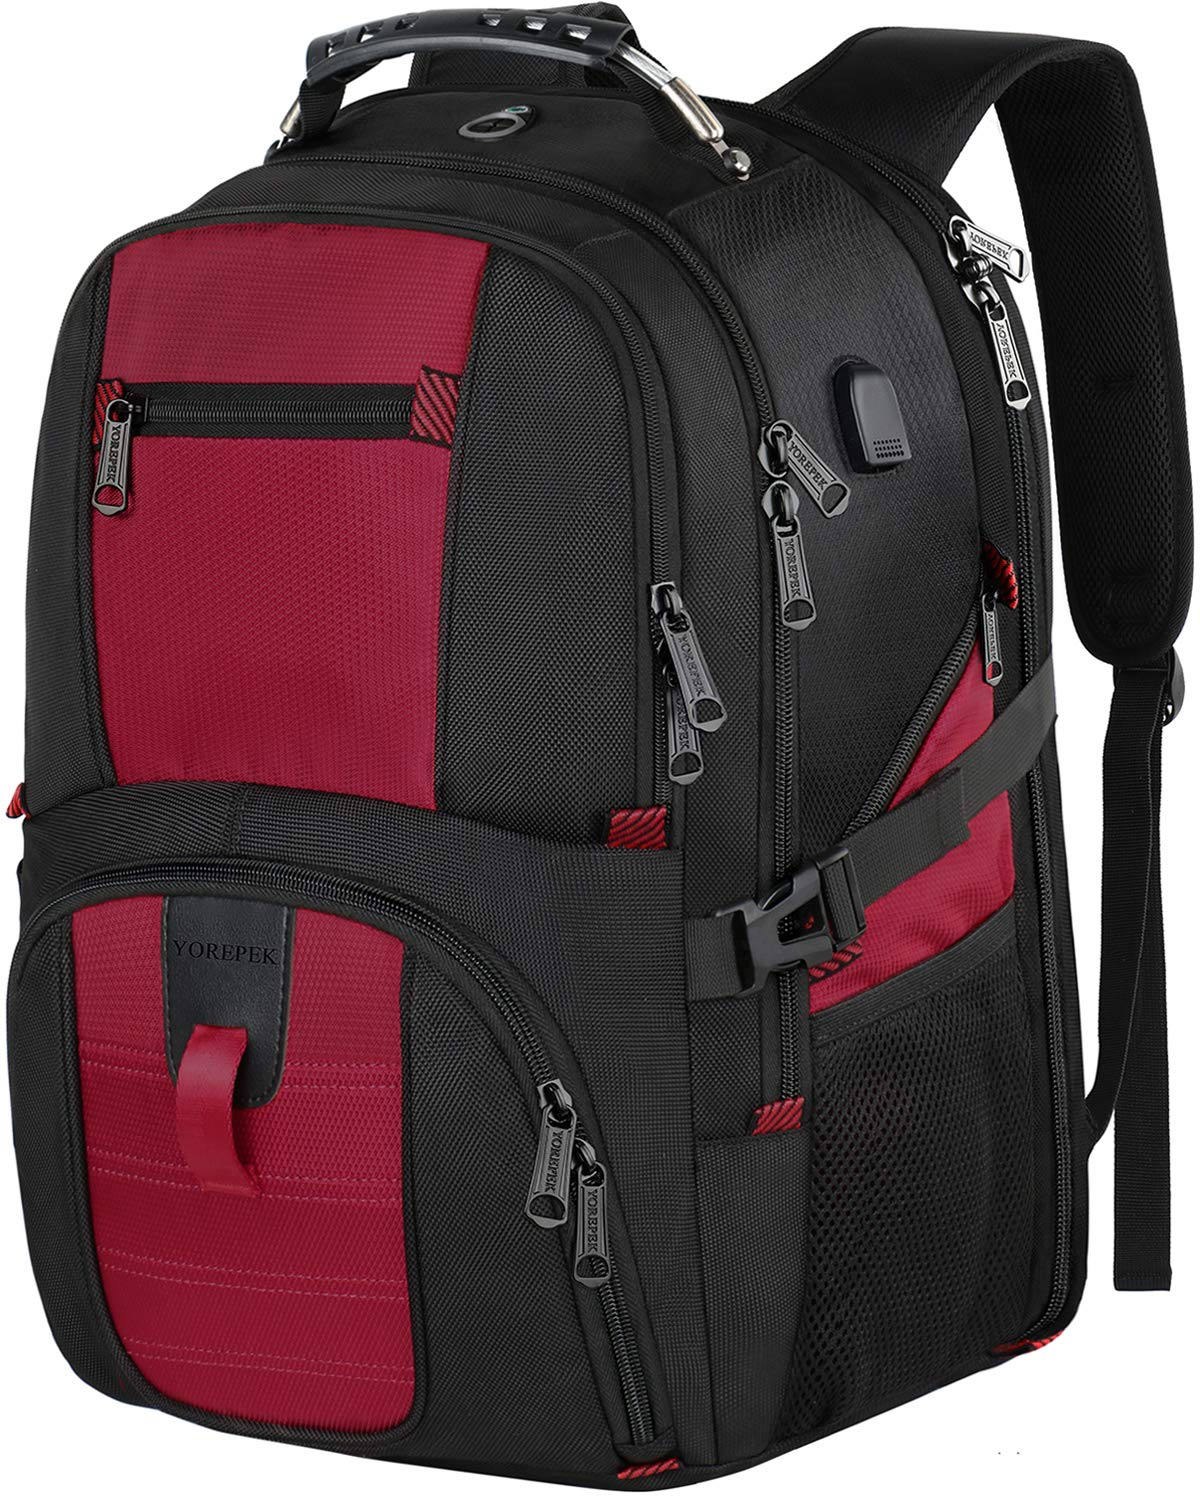 Large Laptop Backpack,TSA Approved Backpacks with USB Charging Port,Durable Travel Backpacks College School Bookbag Computer Bag with Laptop Compartment for Women Men Fits 17 Inch Laptop,Red by YOREPEK